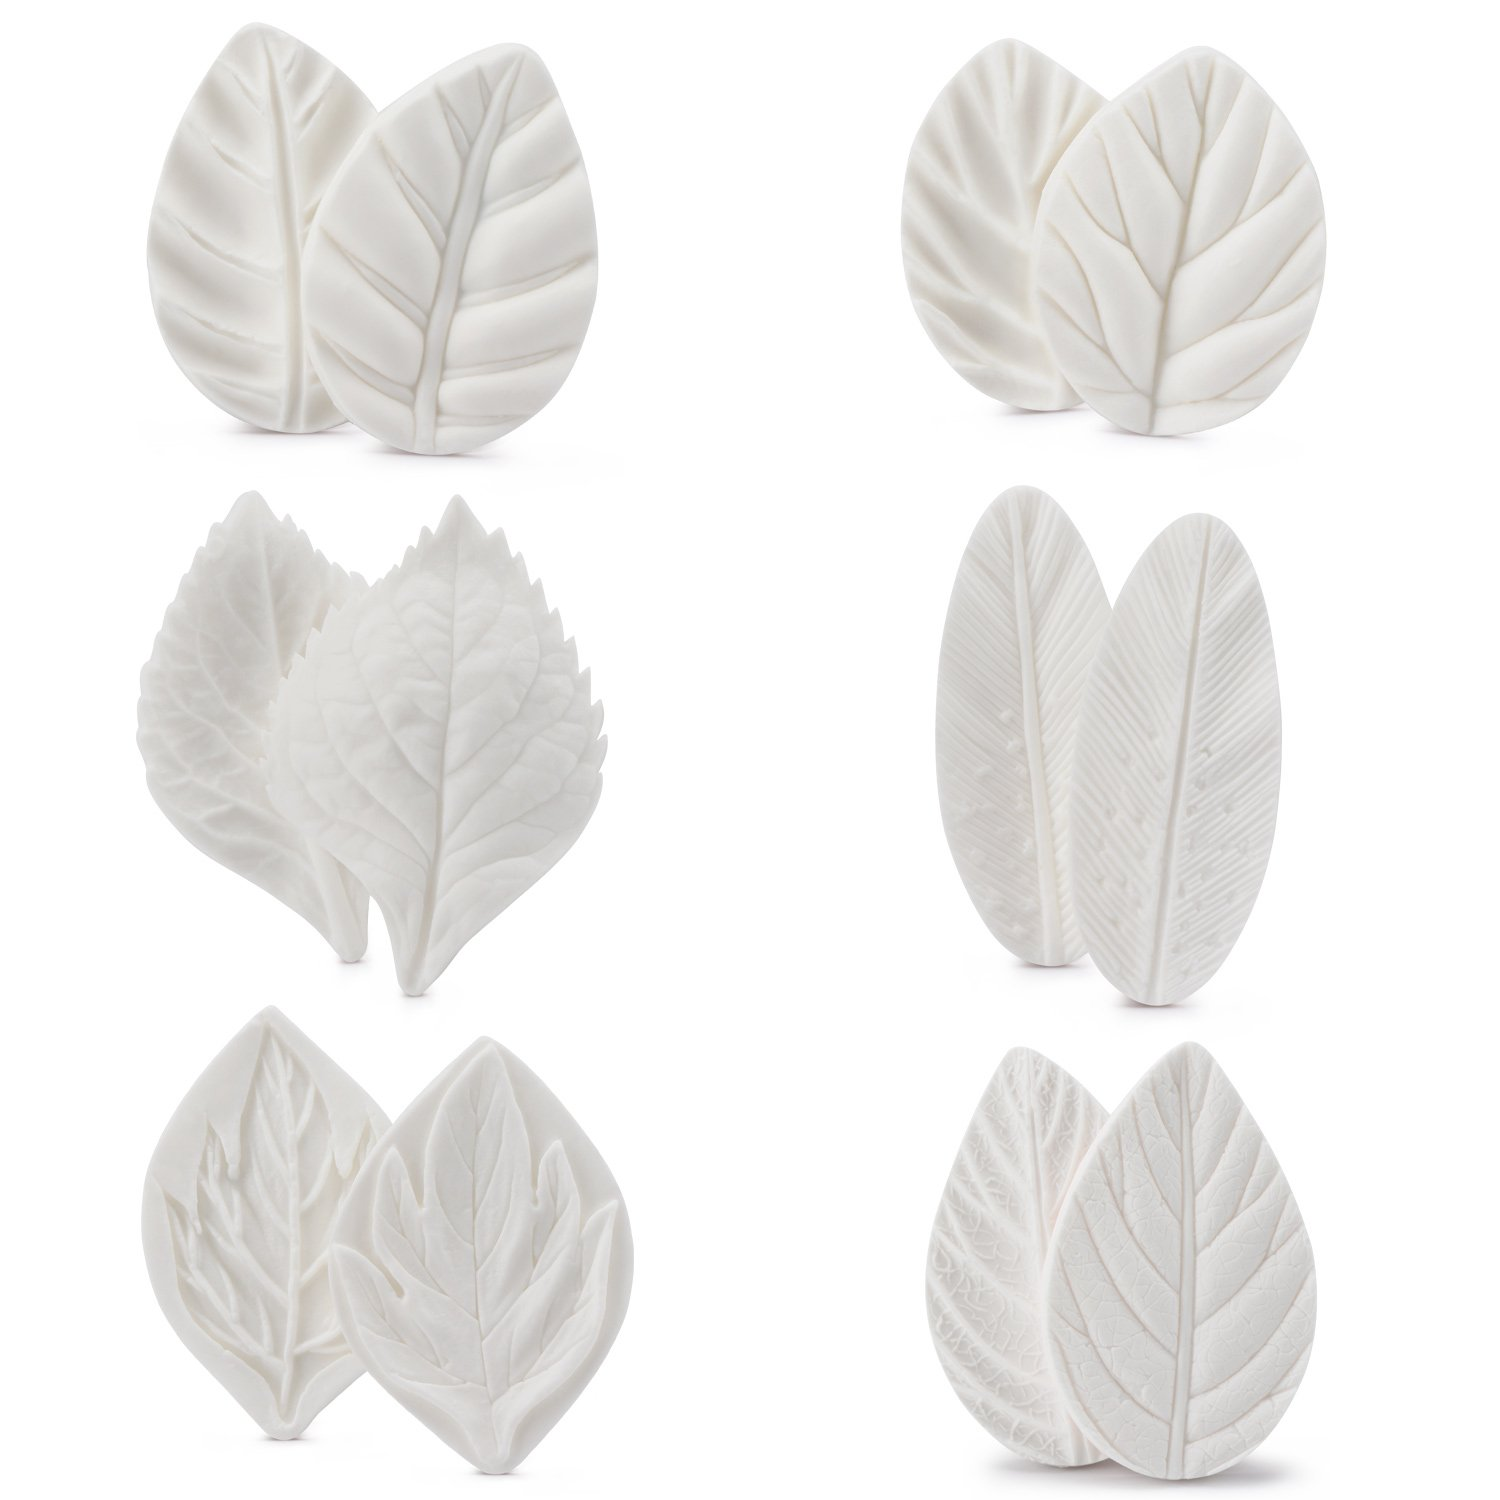 Leaf Fondant Mold Set, Beasea 6 Sets Leaf Press Mold Styling Chocolate Sugar Cookie Cutter Set Silicone Mould Kit Cake Fimo